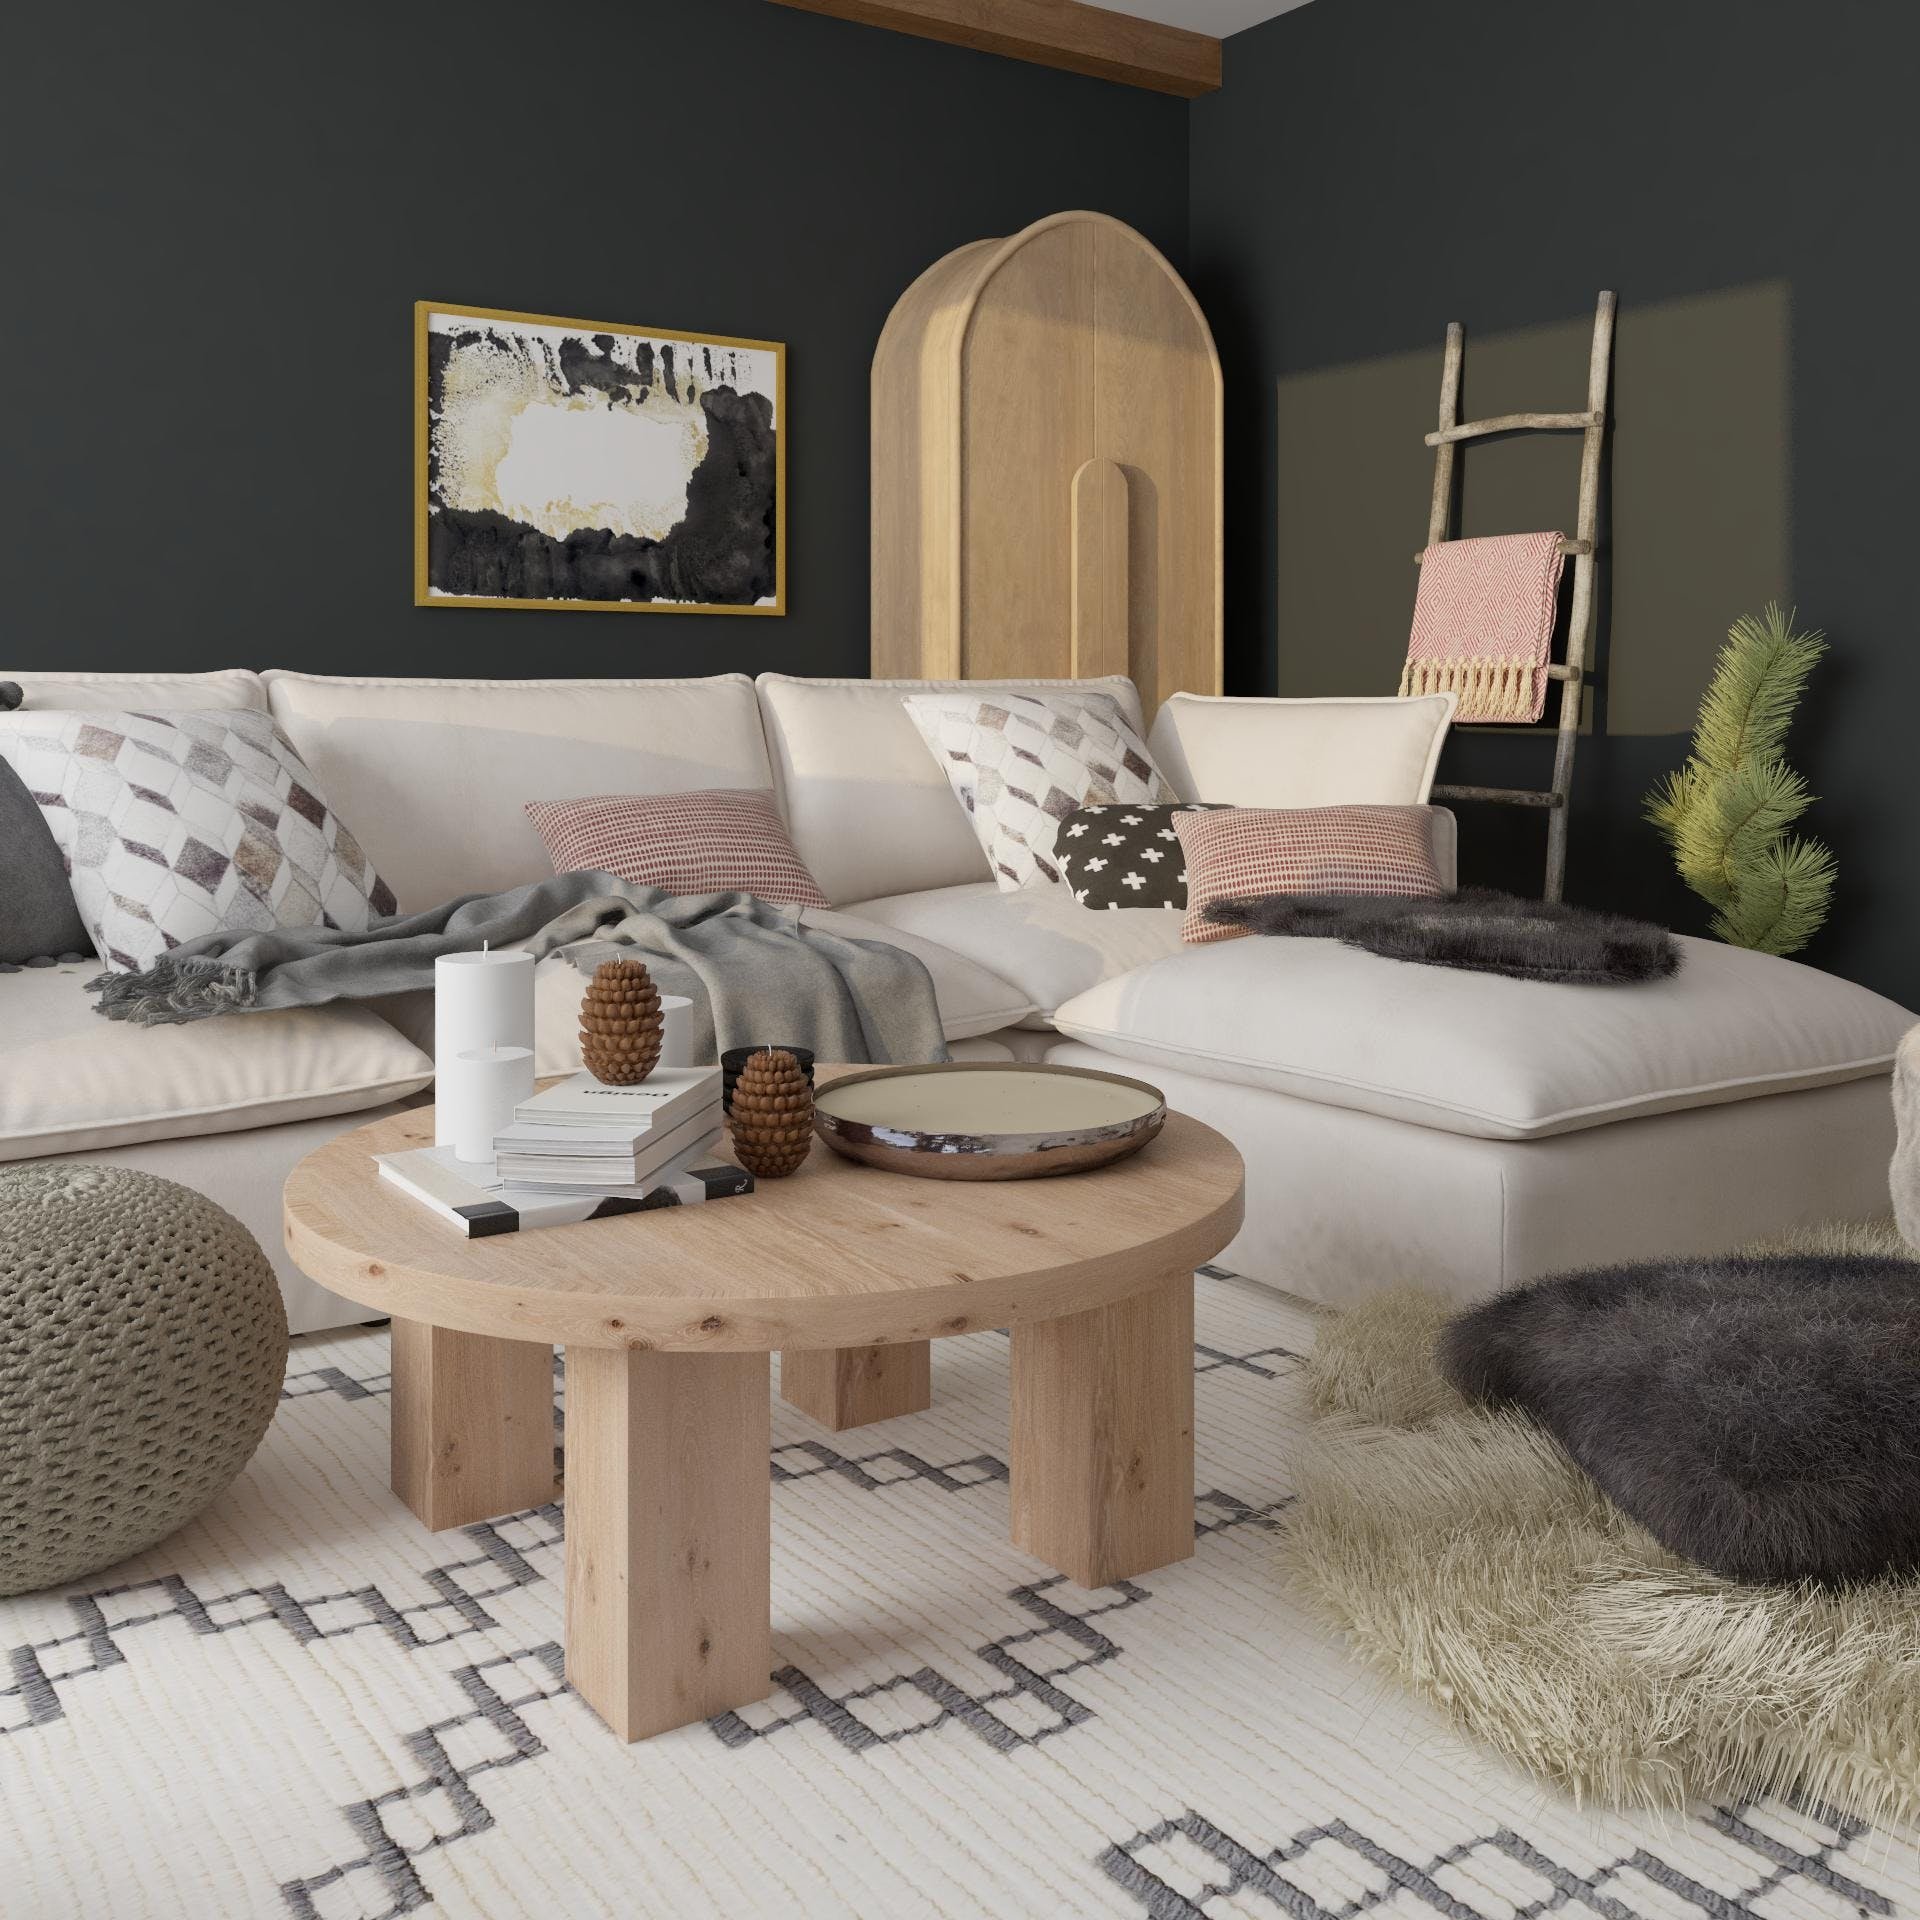 A Hygge-Inspired Living Room Full of Cozy